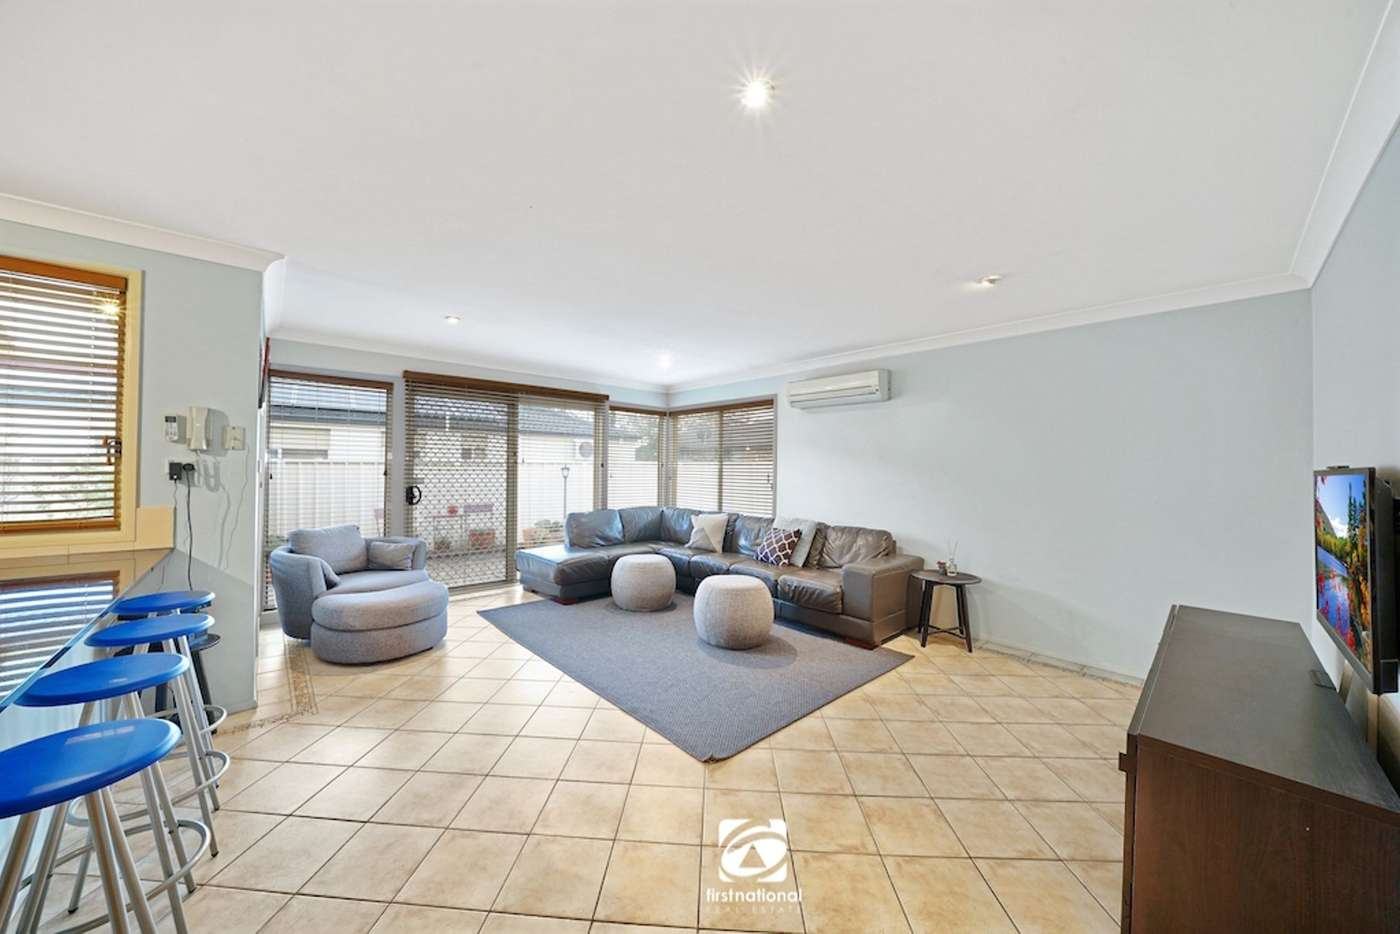 Fifth view of Homely house listing, 3 Albury Court, Harrington Park NSW 2567